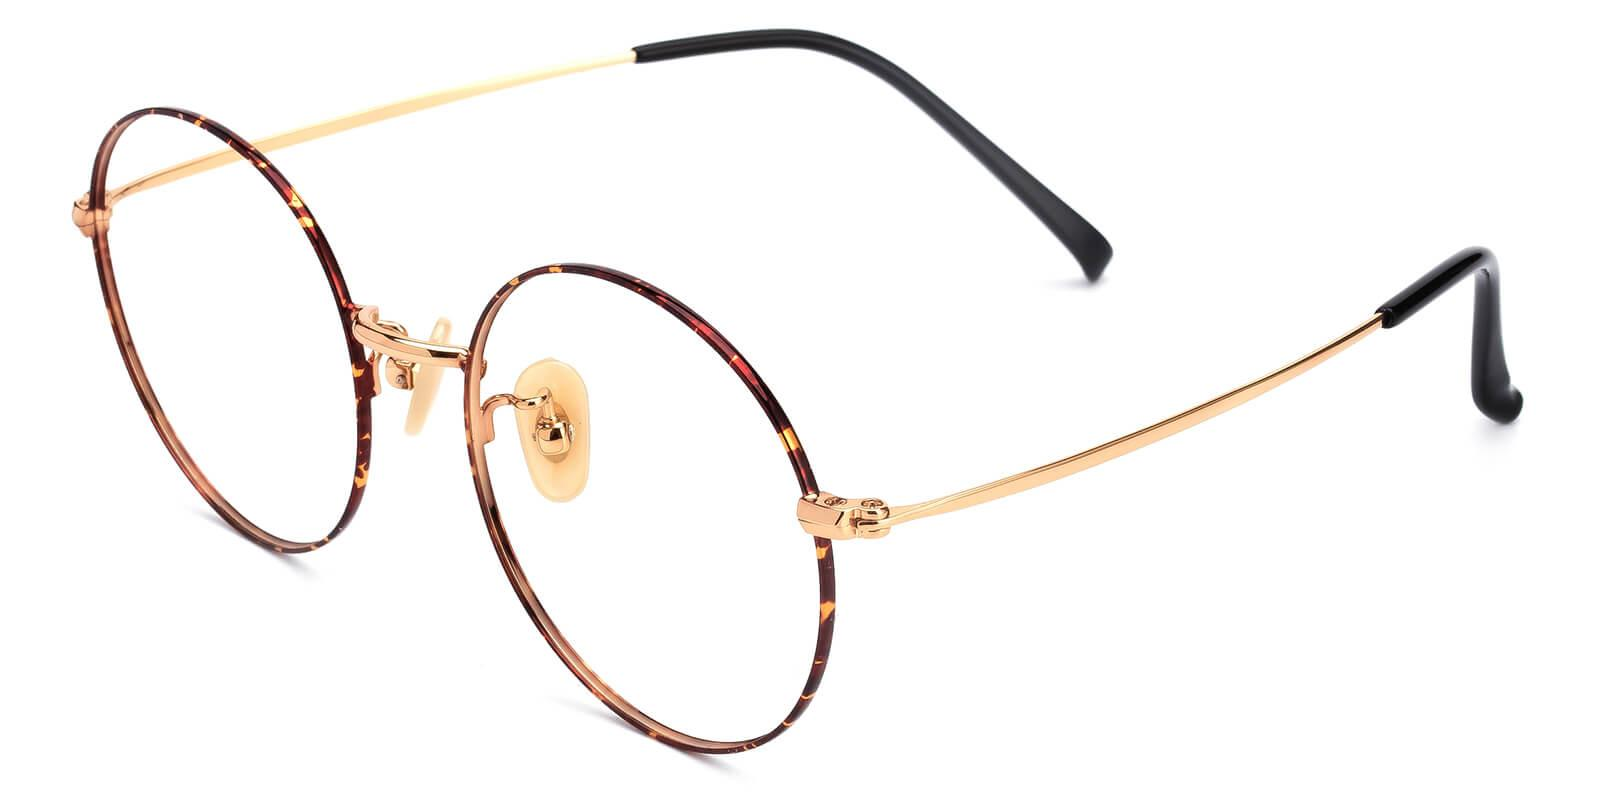 Theenity-Pattern-Round-Titanium-Eyeglasses-additional1